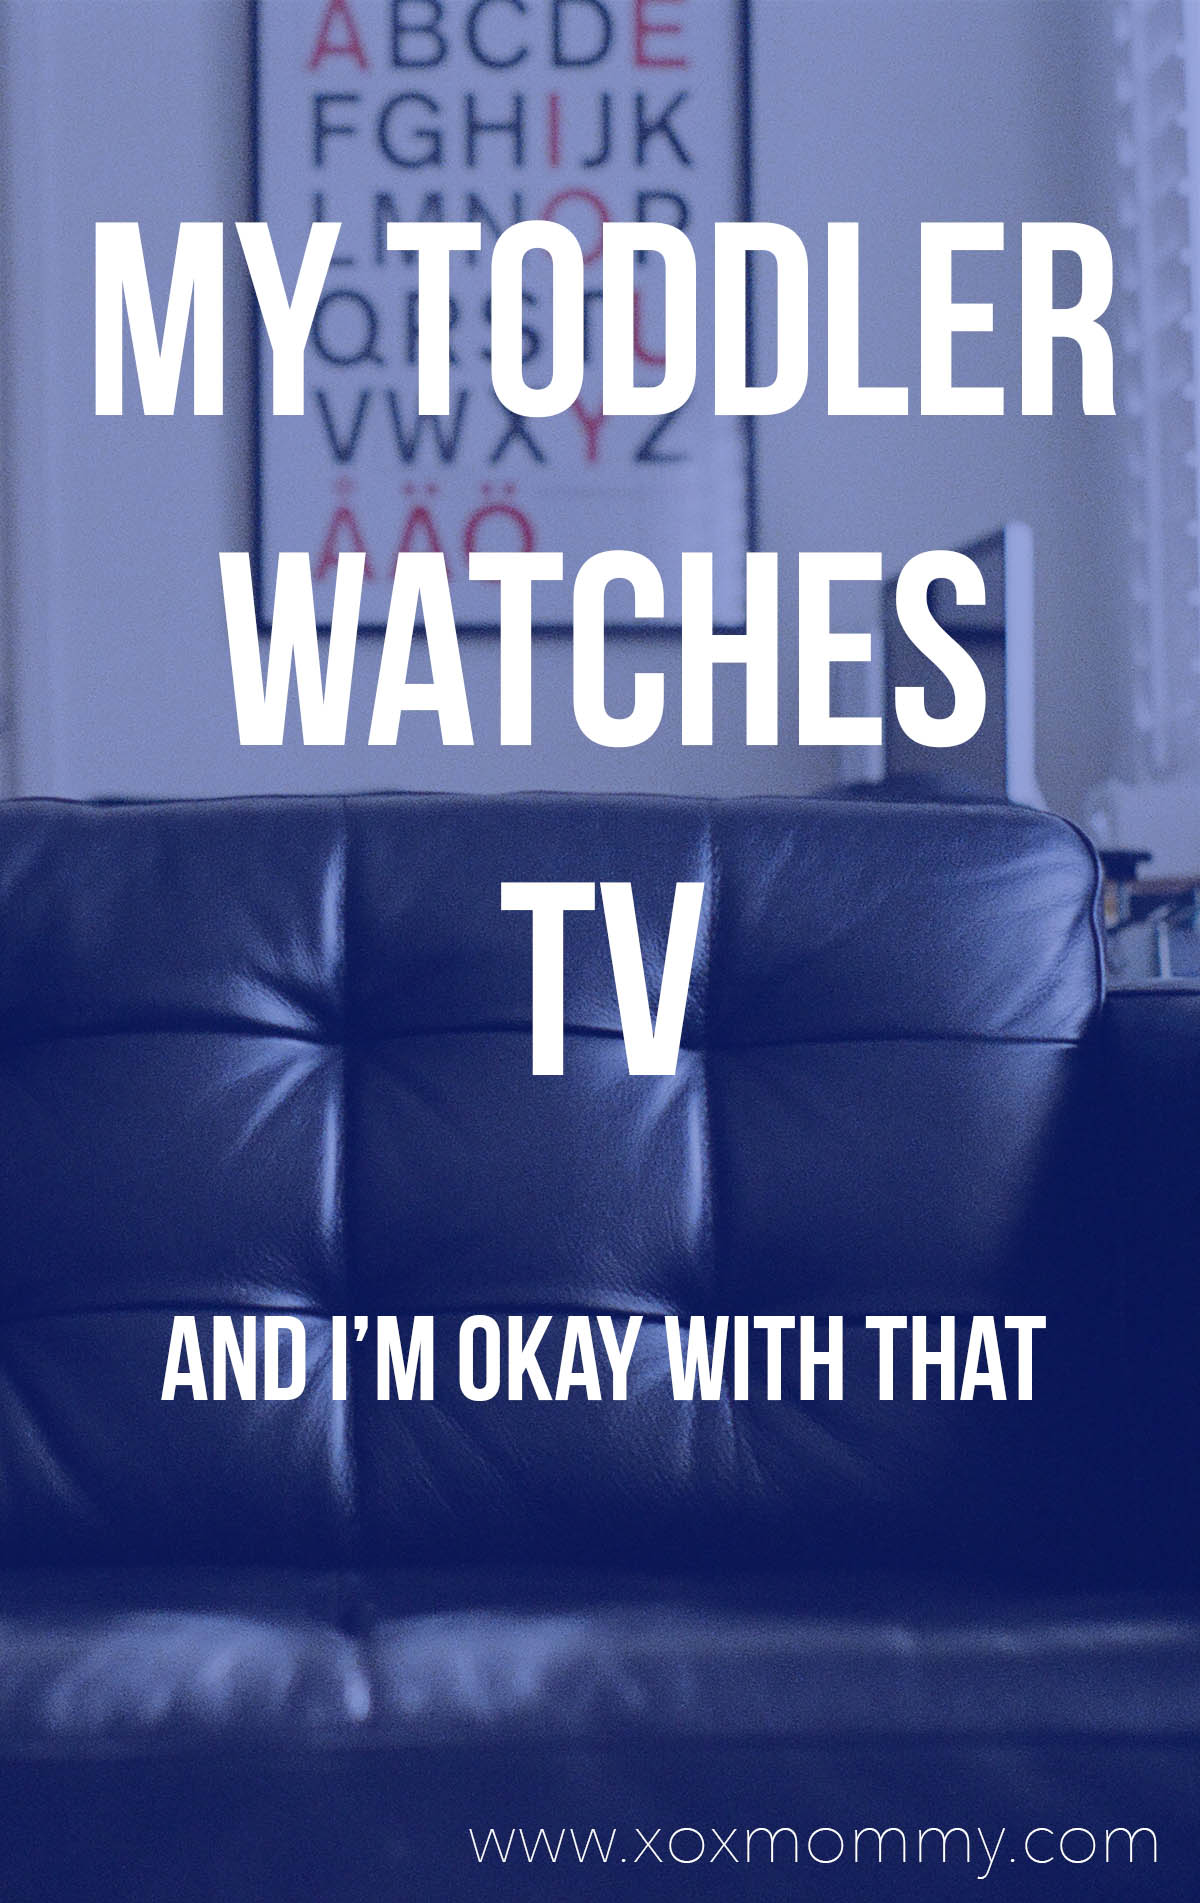 My Toddler watches TV, and I'm okay with that